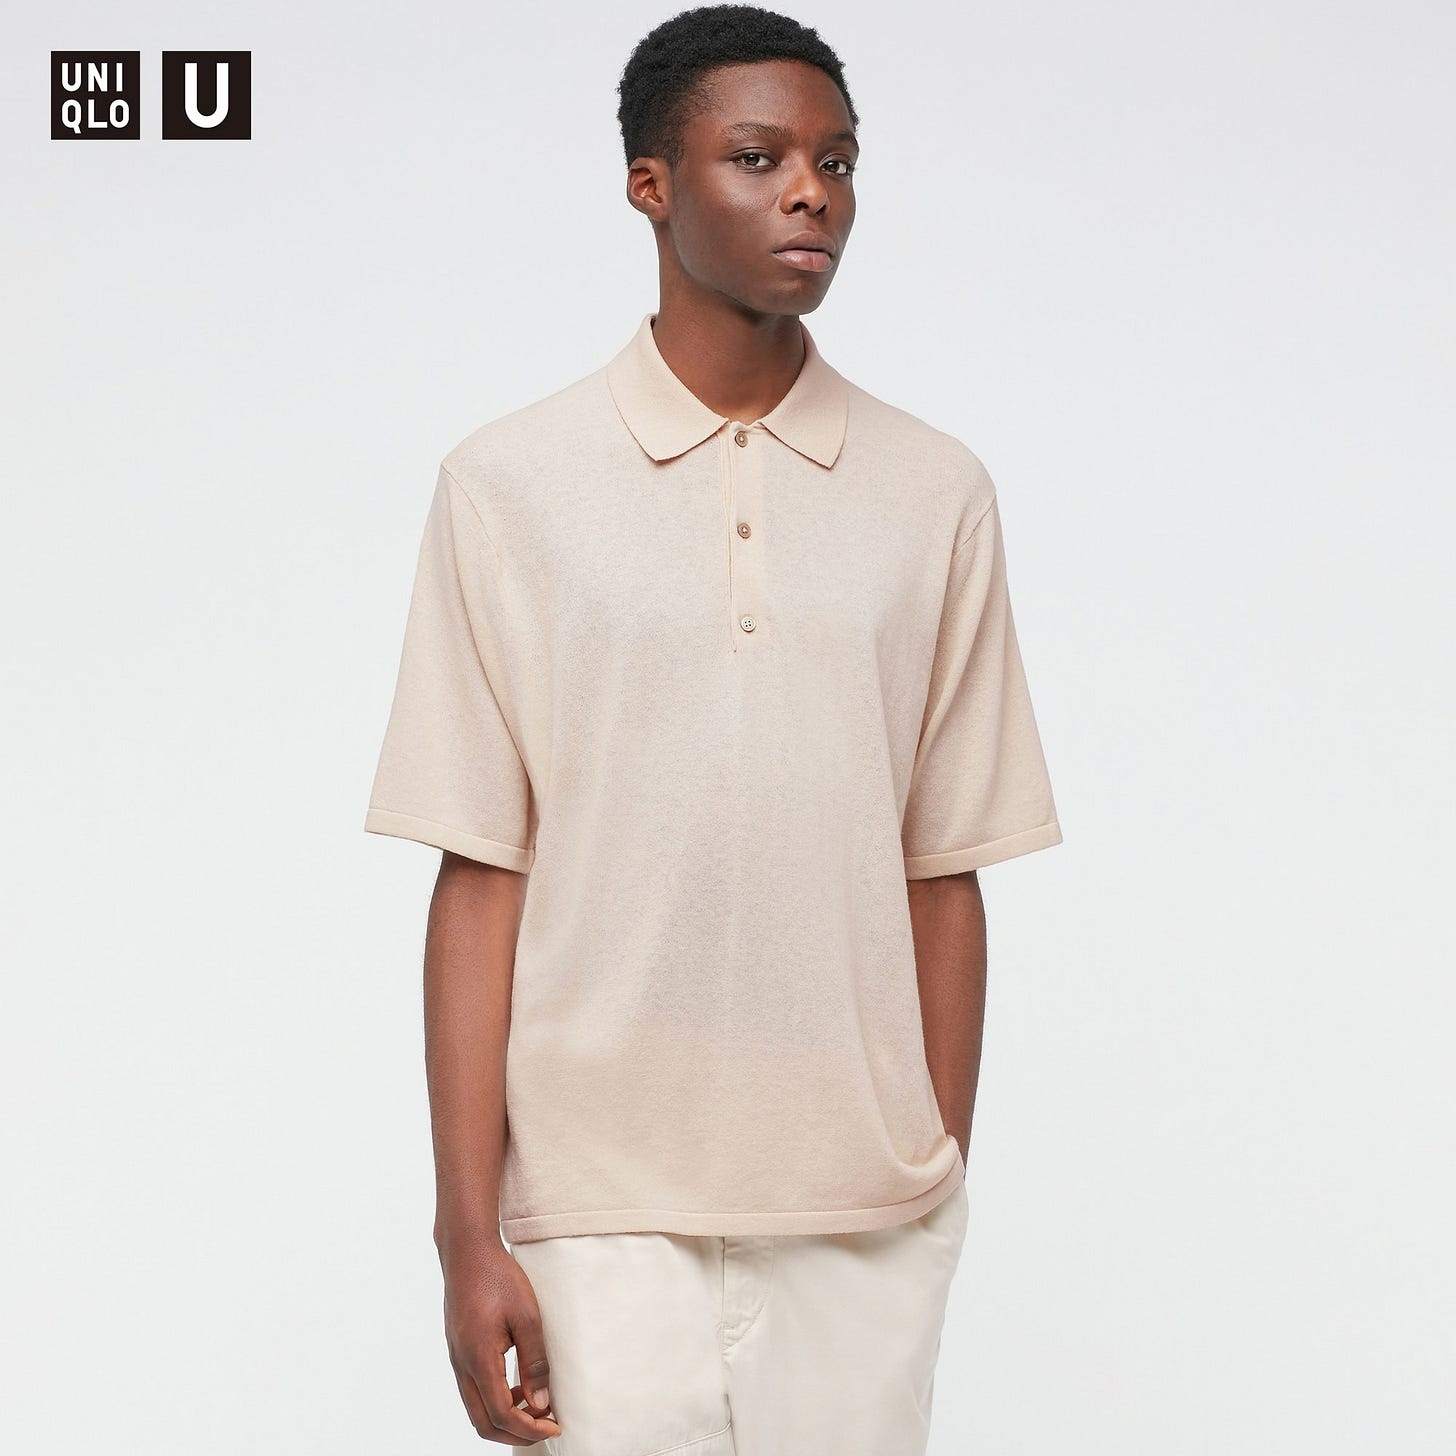 Fine-Gauge Knitted Short-Sleeve Knitted Polo Shirt